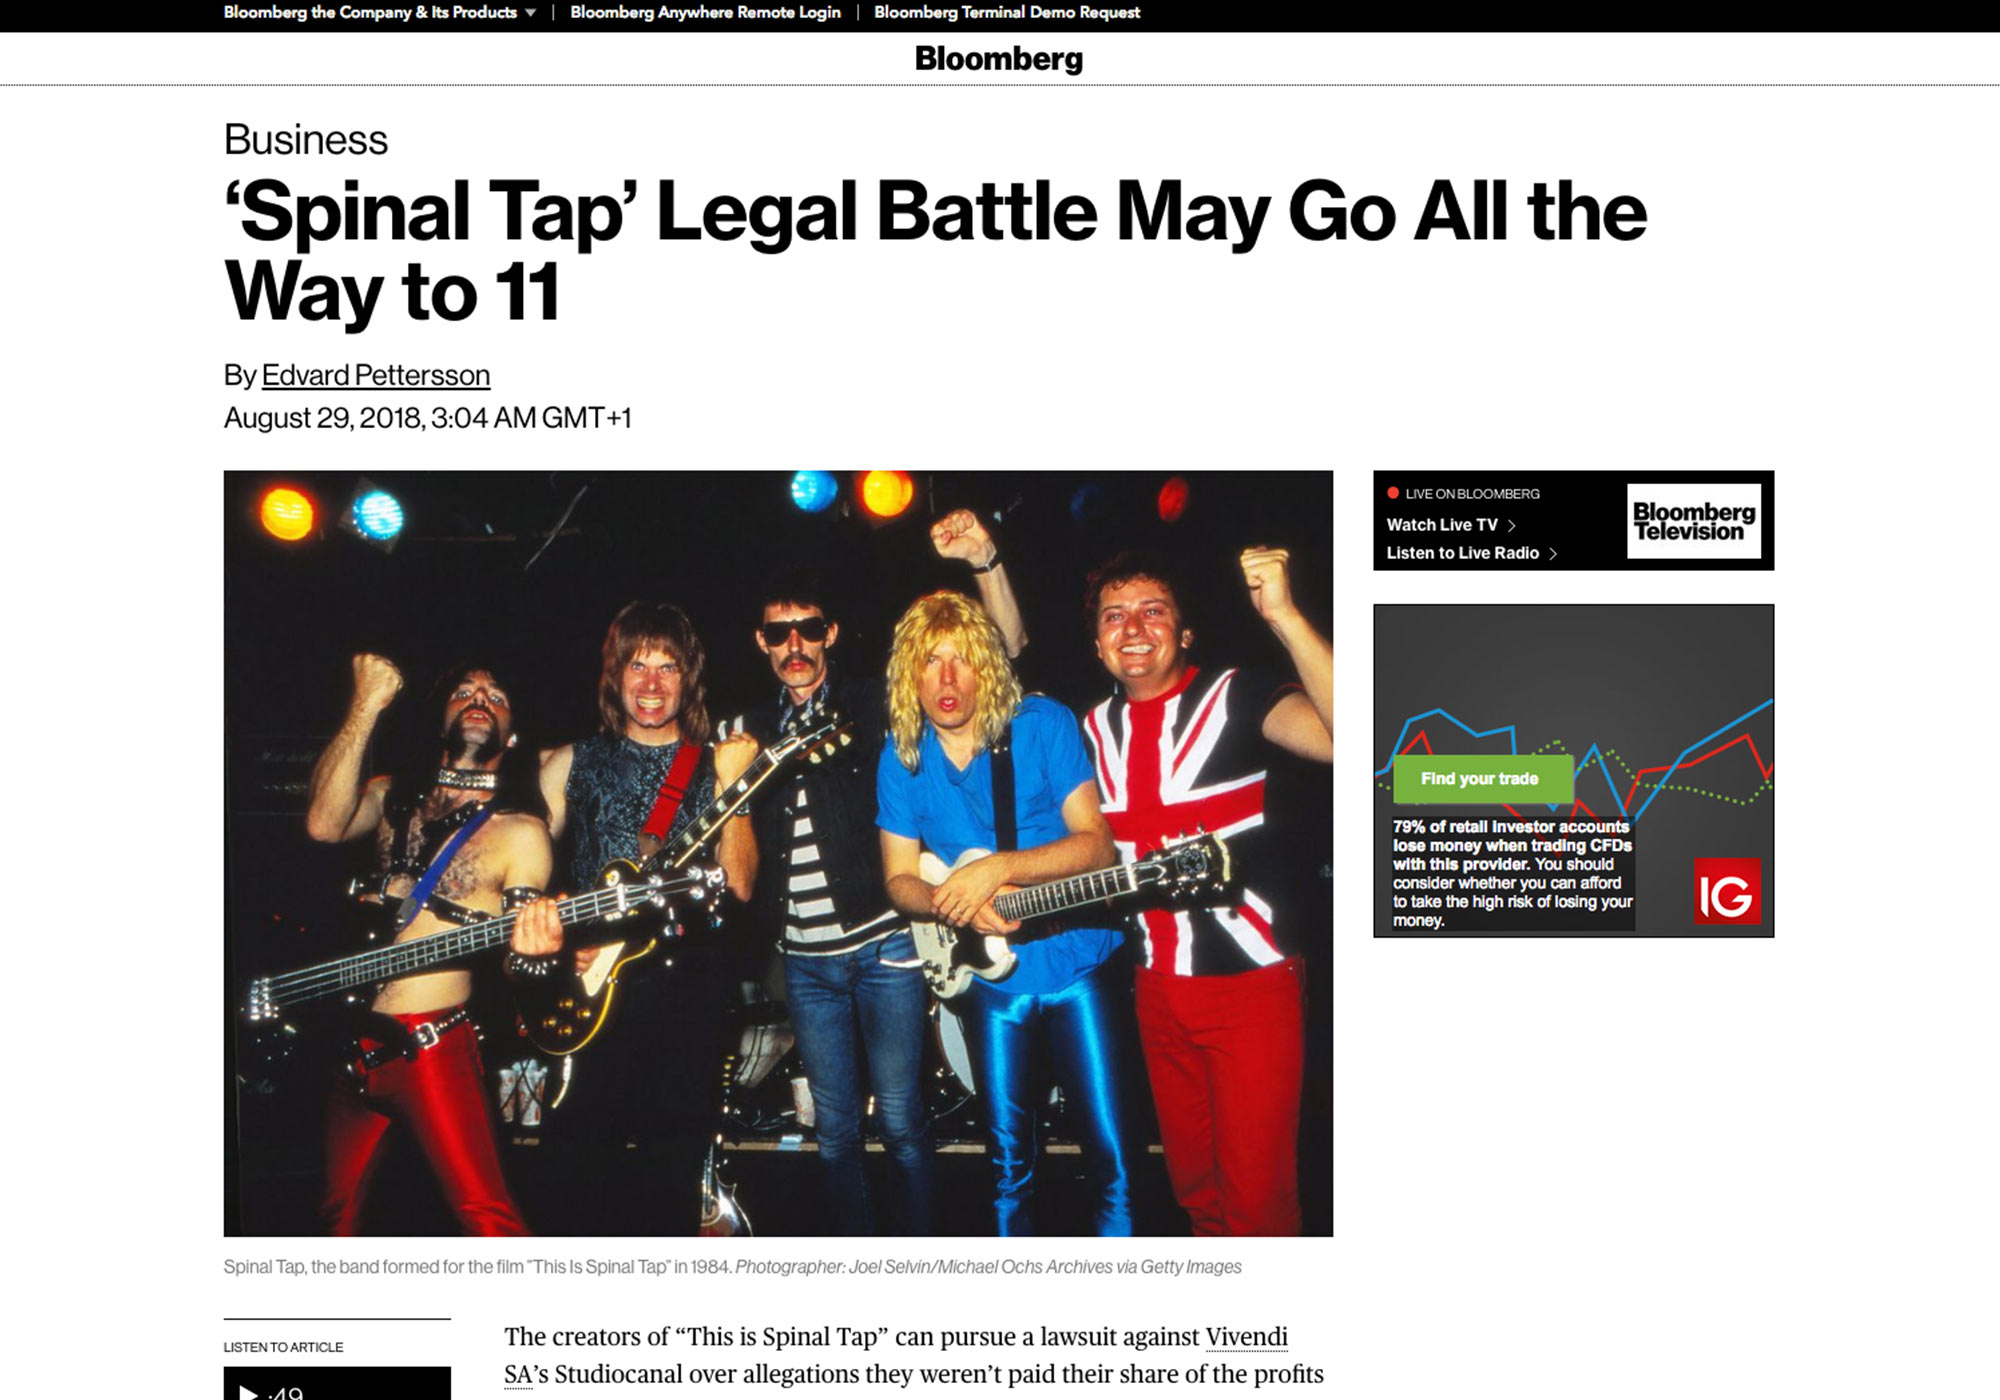 Fairness Rocks News 'Spinal Tap' Legal Battle May Go All the Way to 11